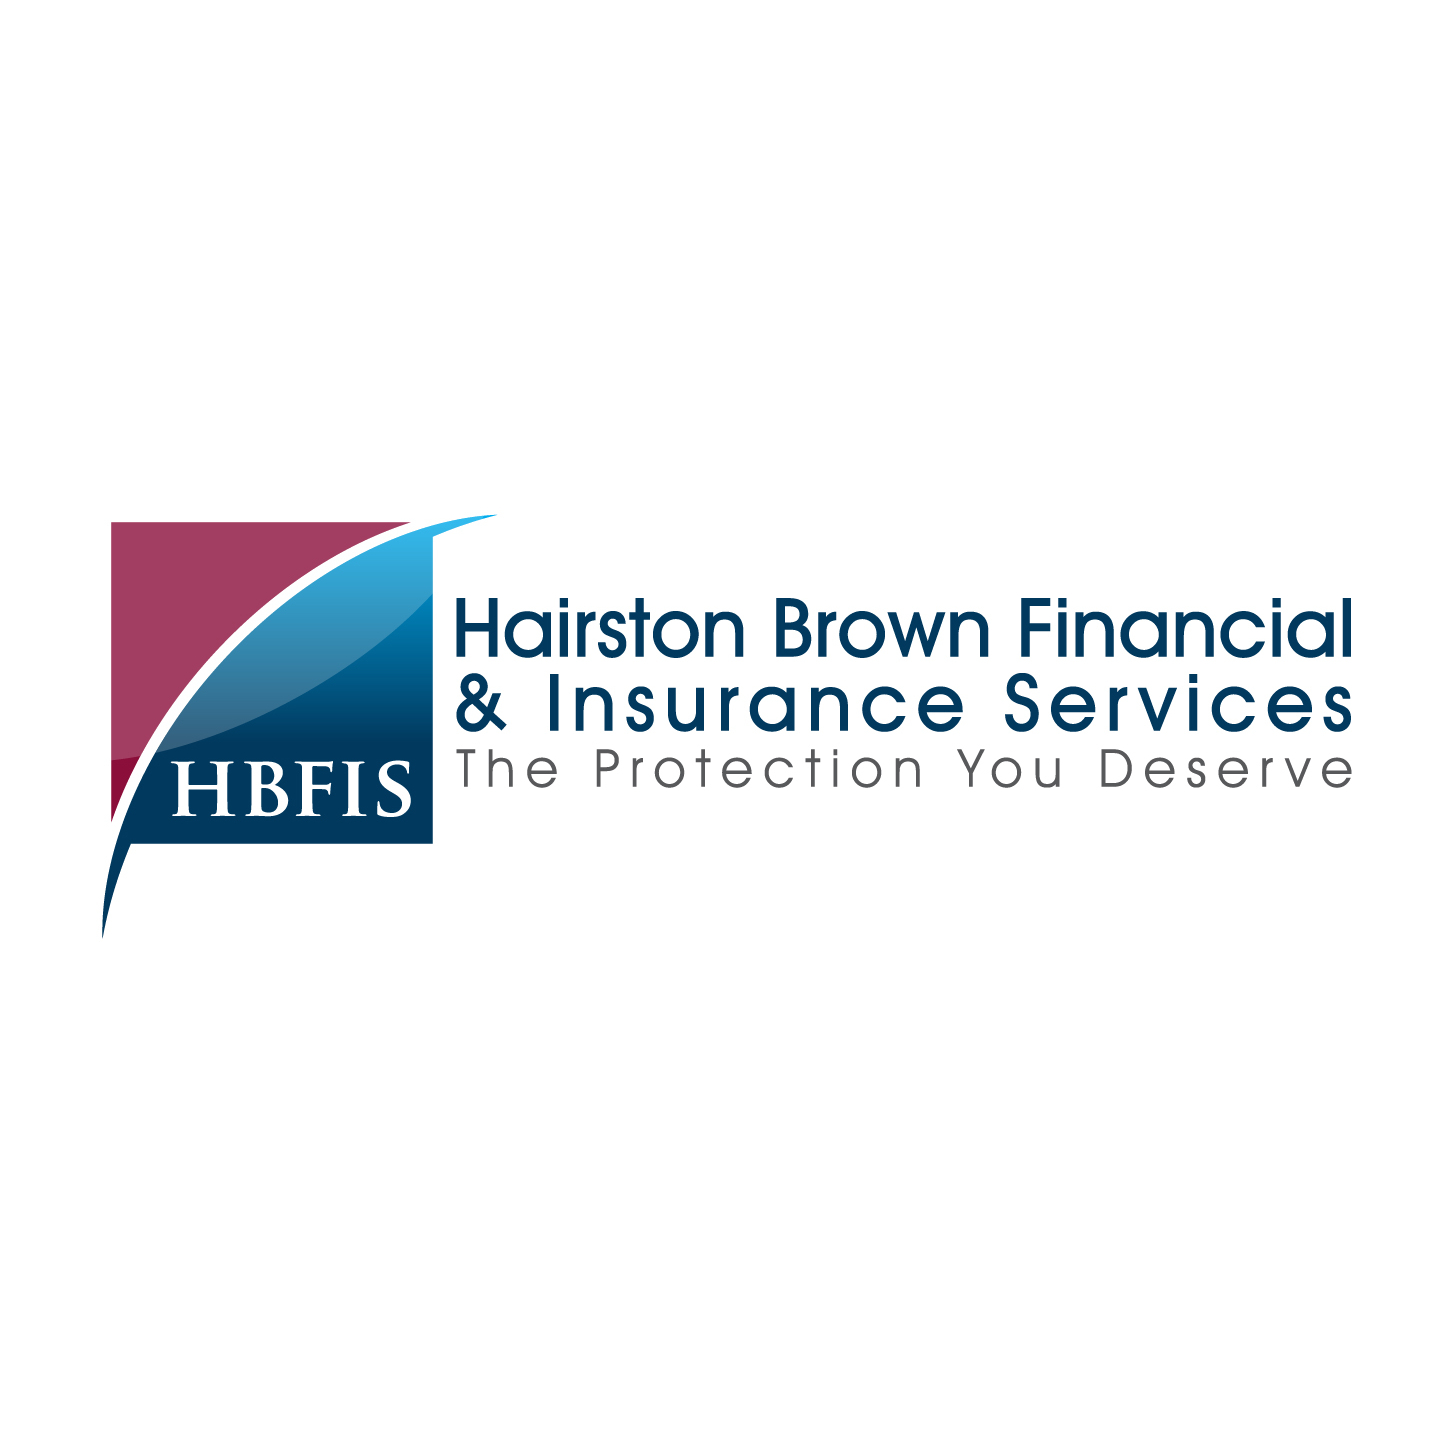 Hairston Brown Financial & Insurance Services